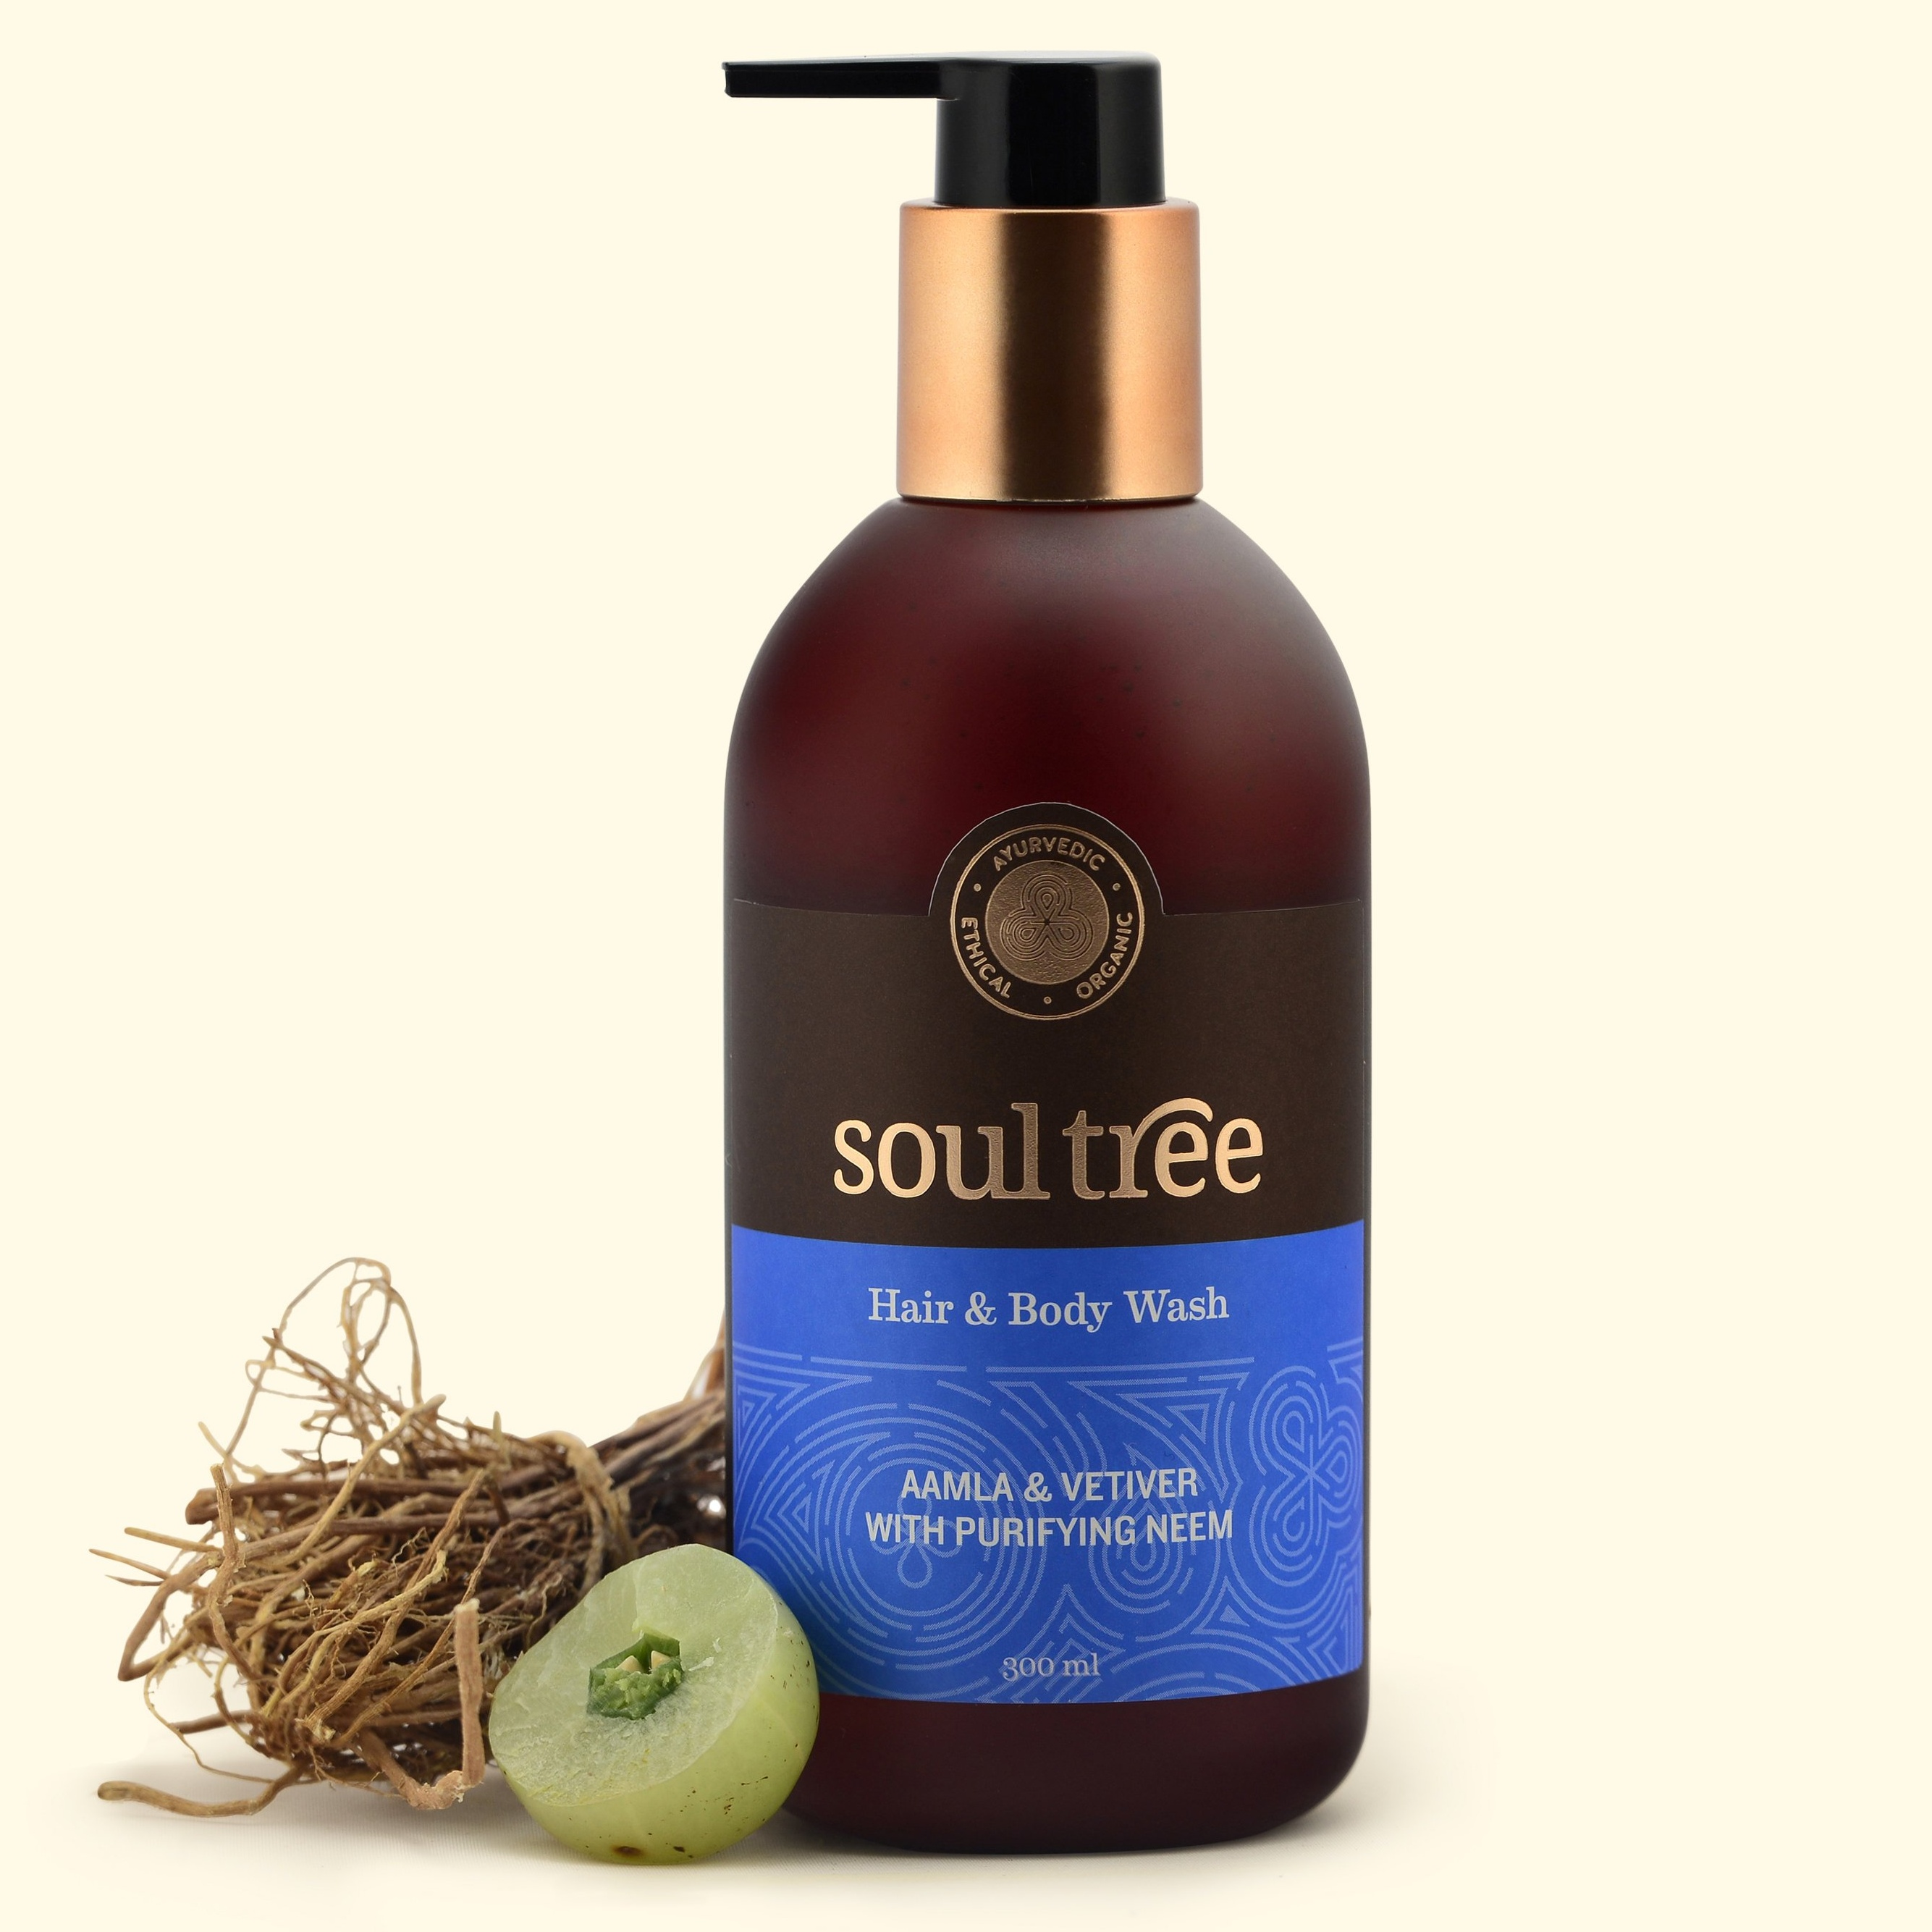 Soultree Amla & Vetiver Hair & Body Wash 300 ml